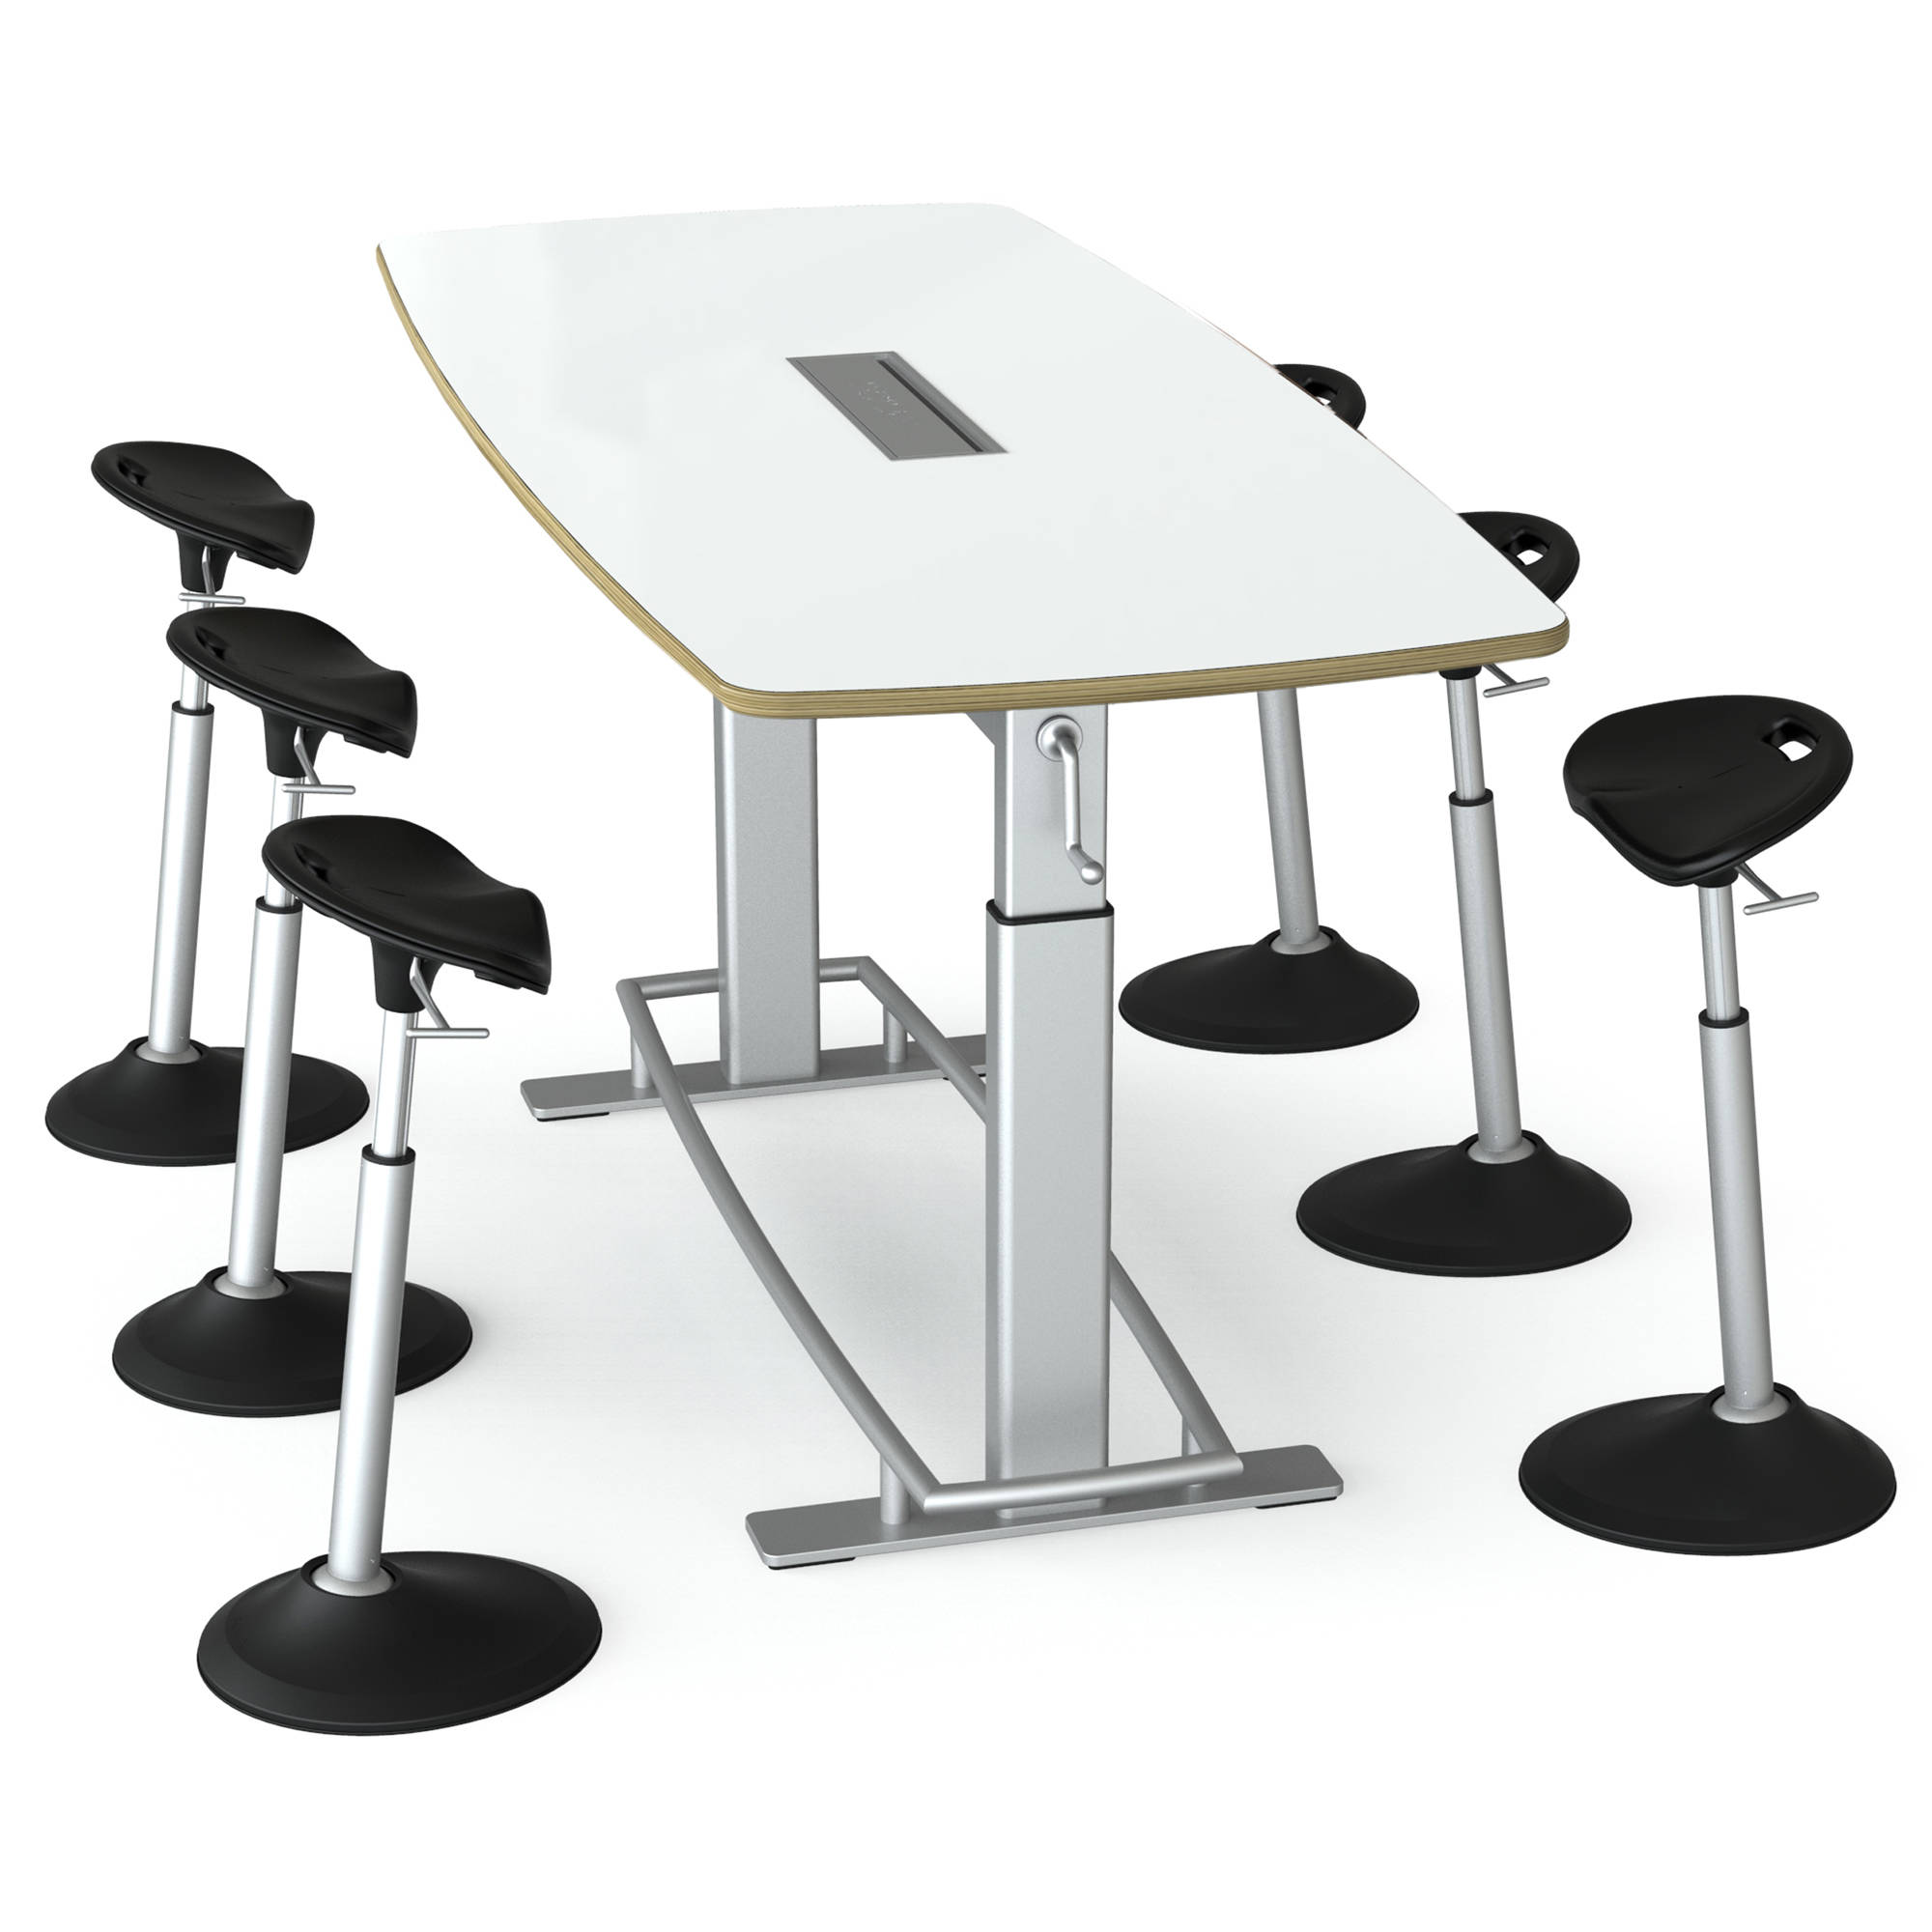 Focal Upright Furniture Confluence 6 Table And Six Mobis Seat Bundle (Dry  Erase Table Top